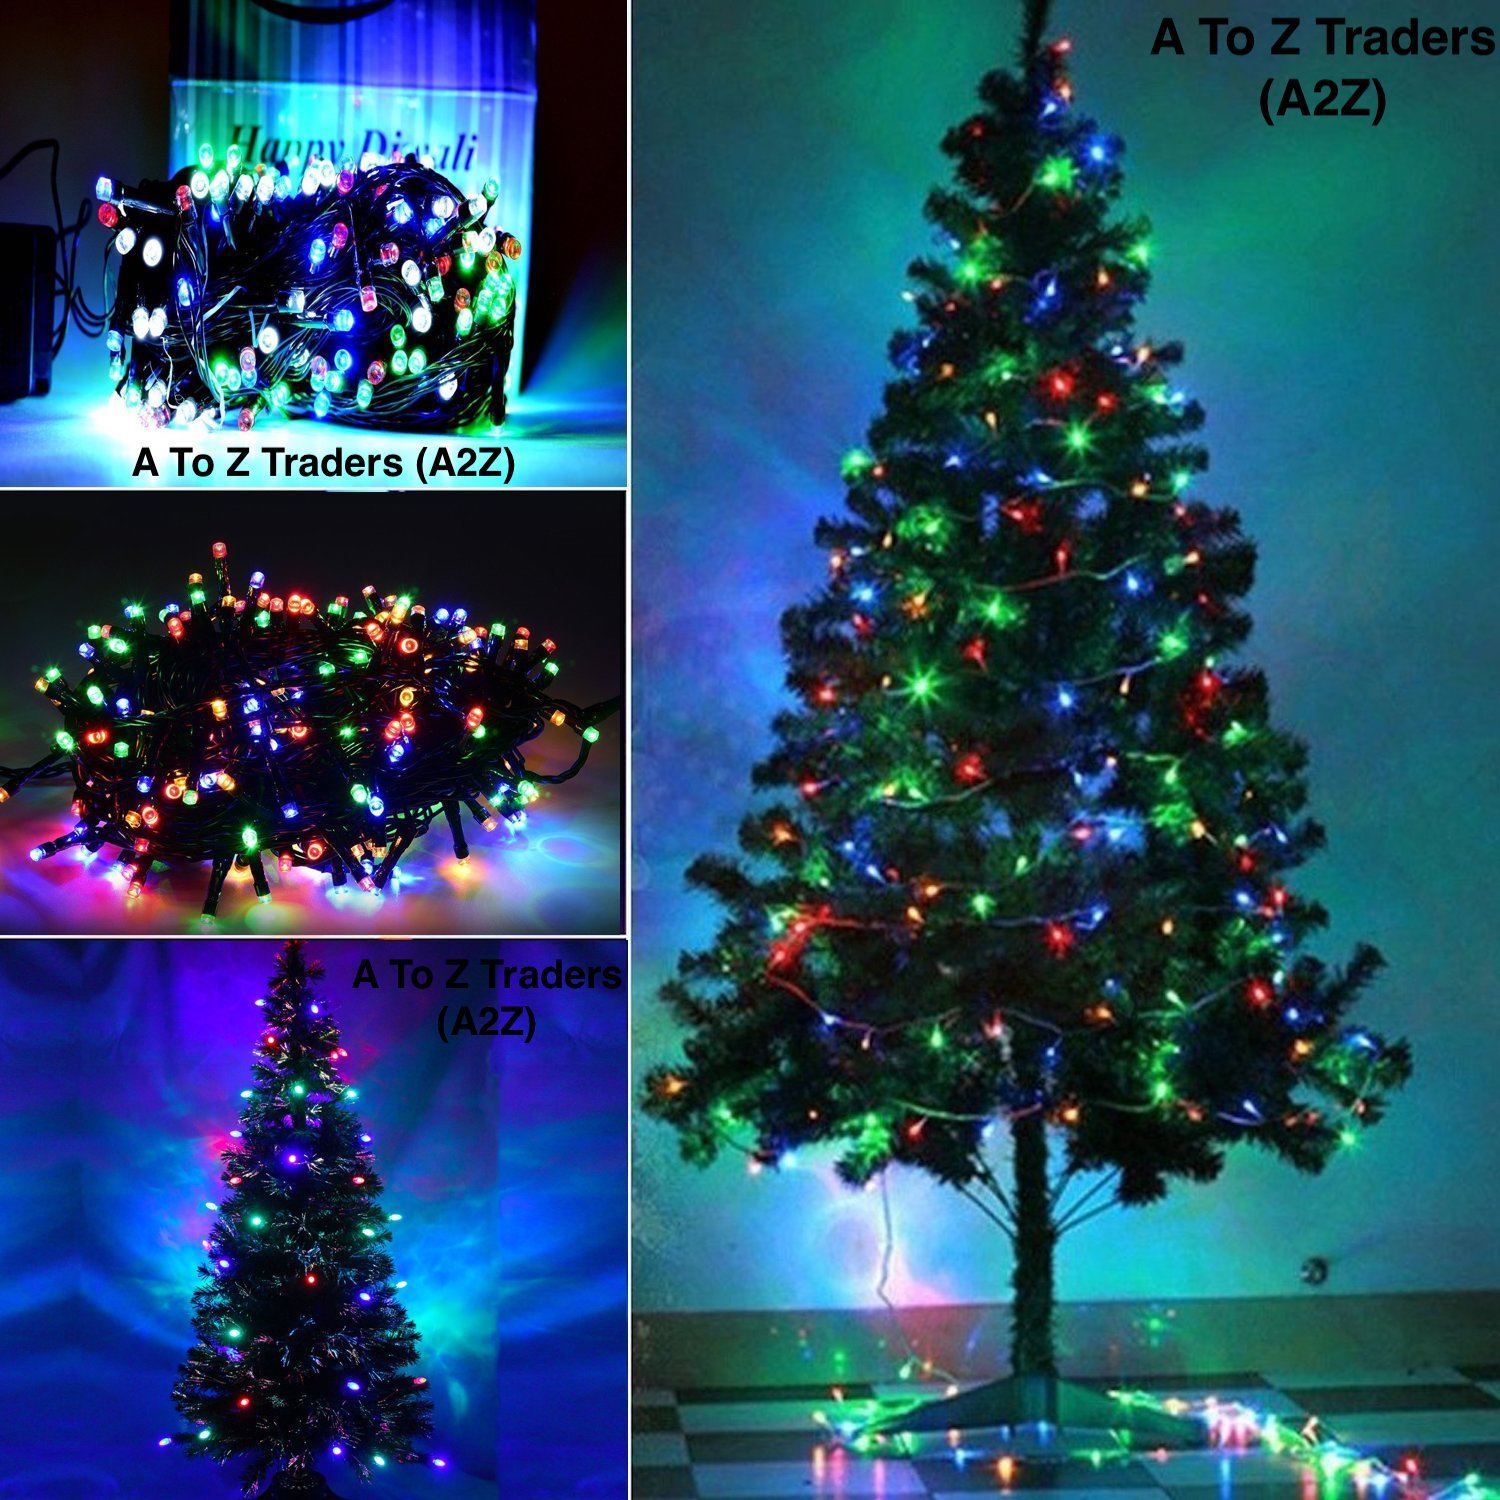 Buy A2Z 6Feet Xmas Christmas Tree 45Meter Multi Colour Led String